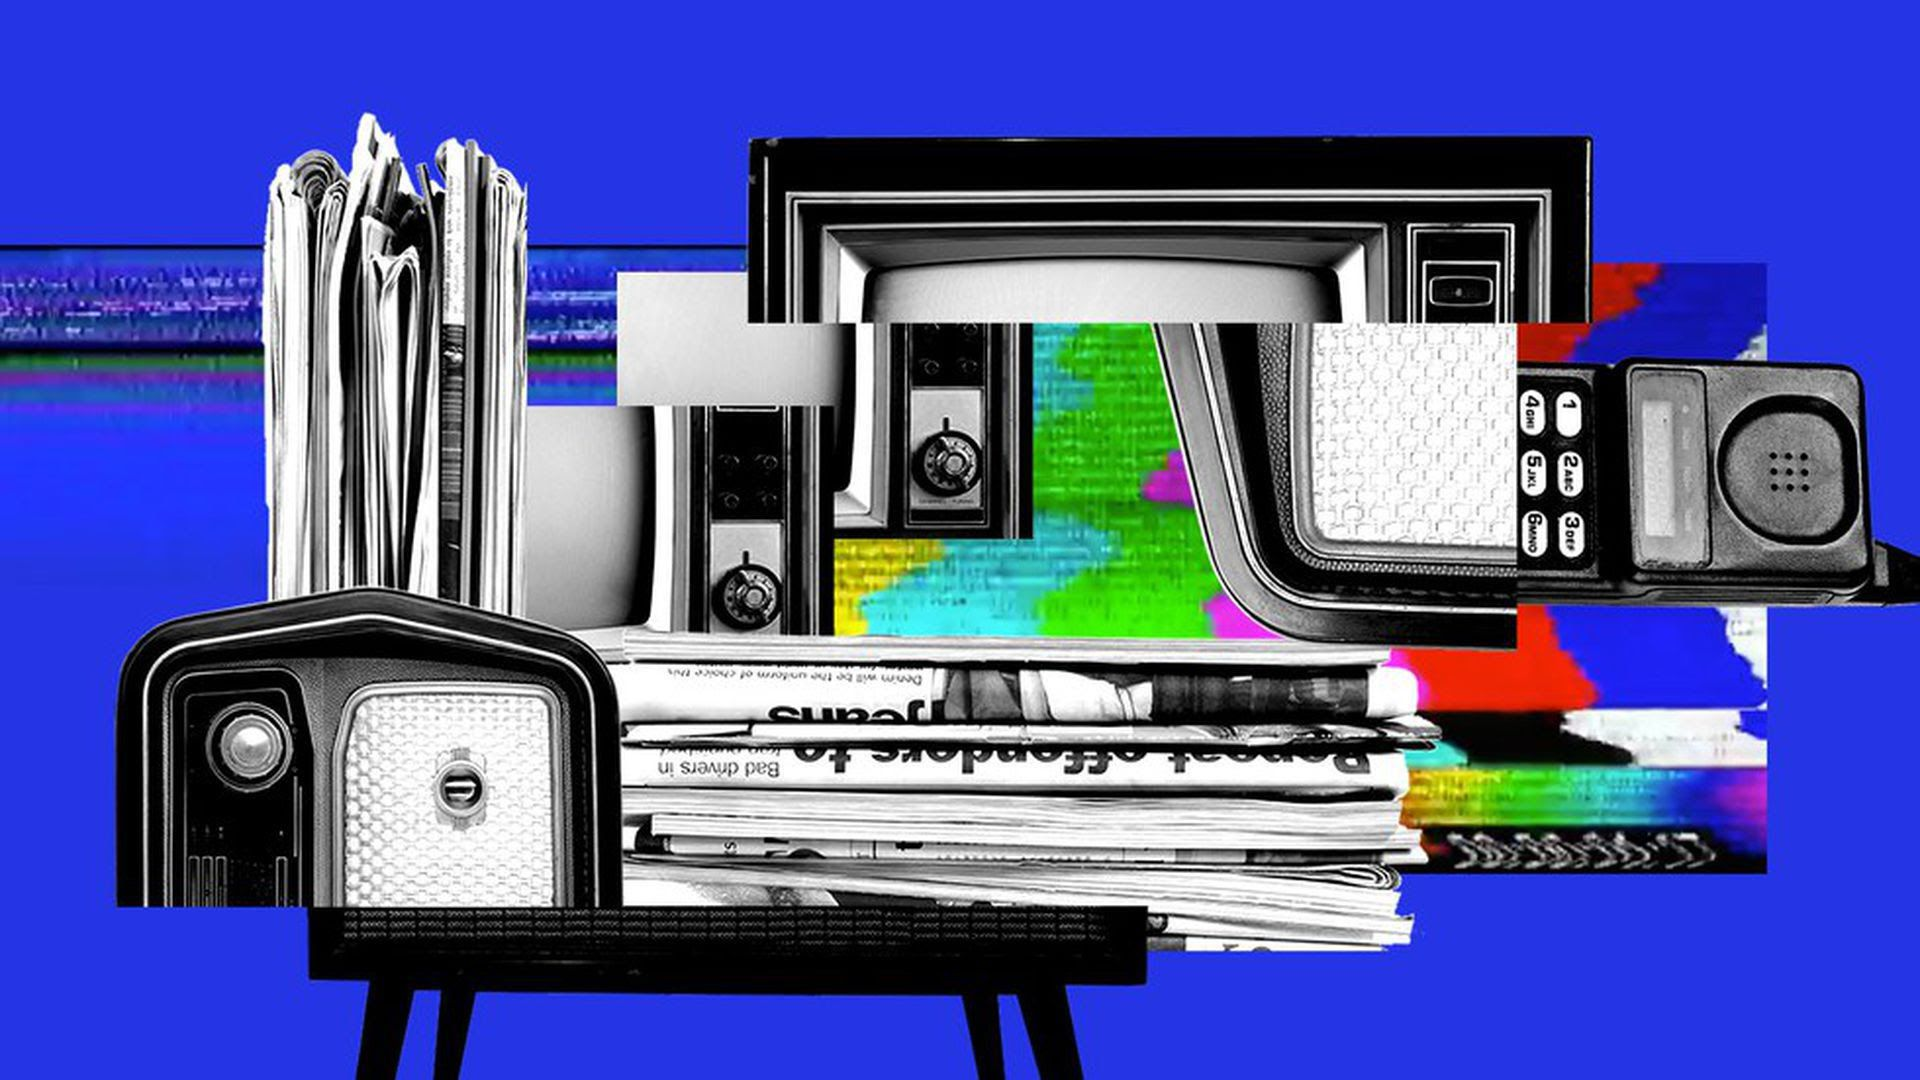 Tech giants gobbling up TV talent, awards, money - Axios